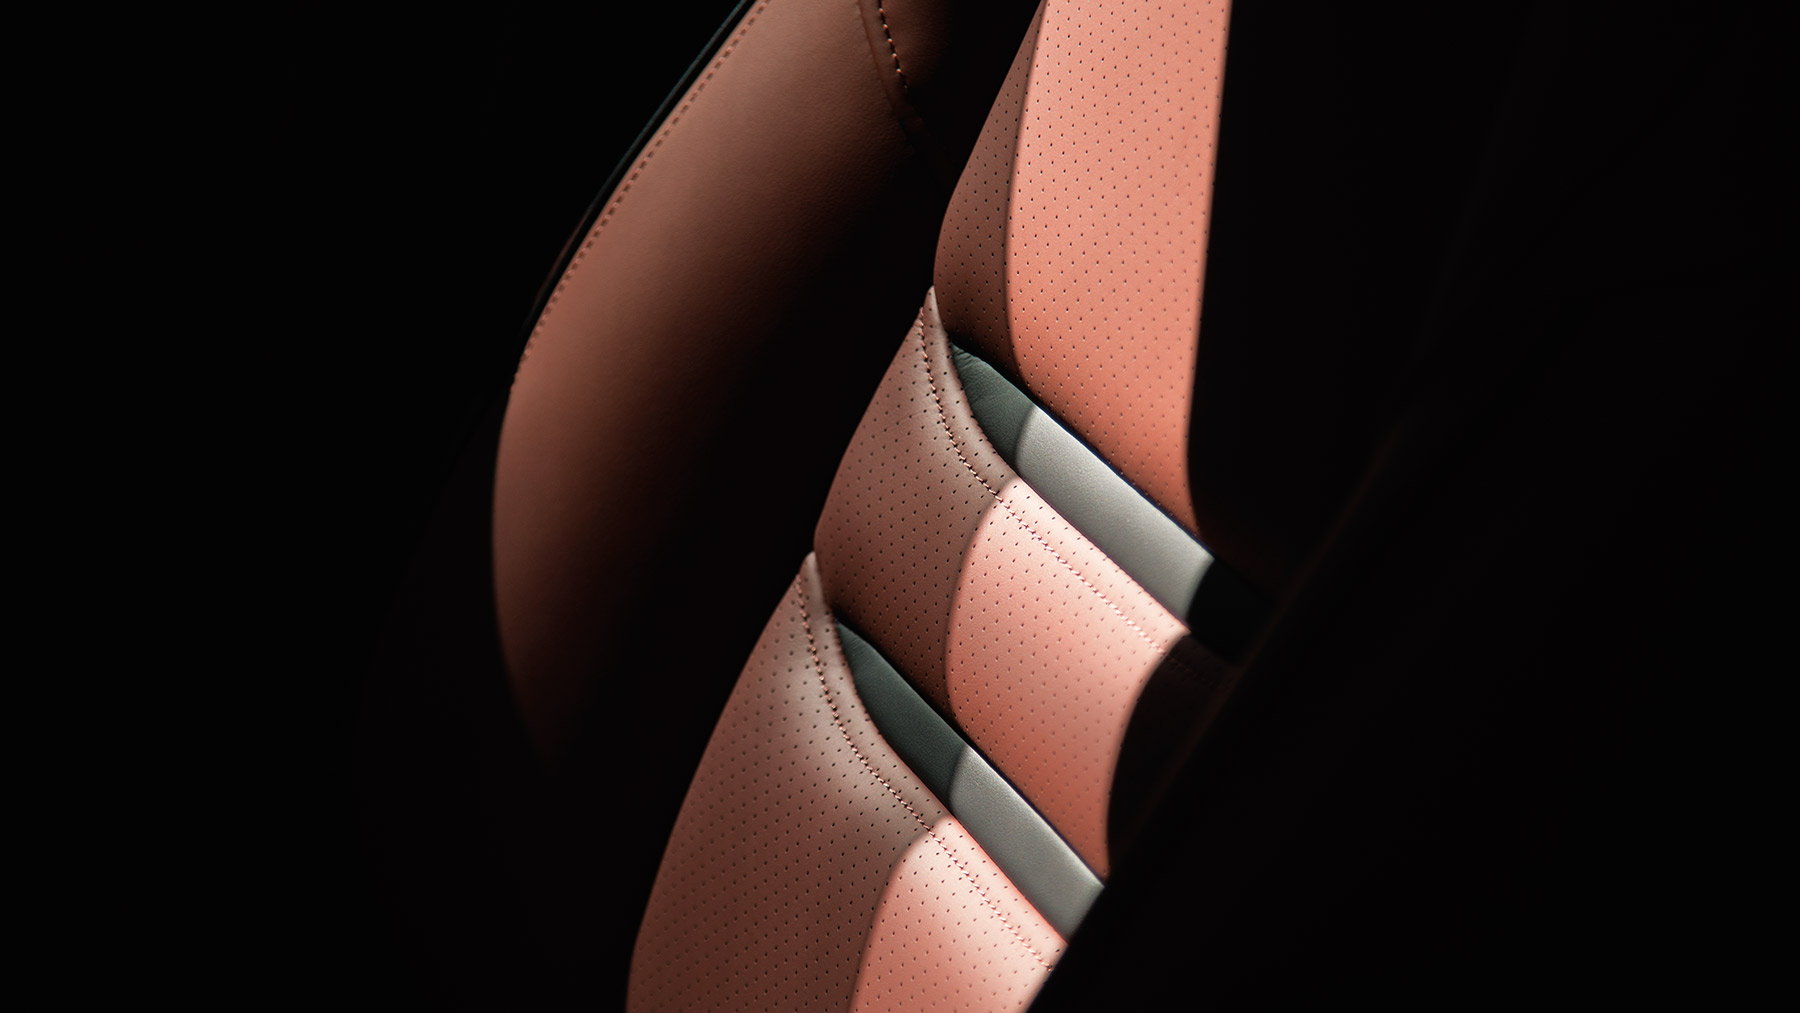 Luxurious Upholstery in the 2019 Mazda CX-9